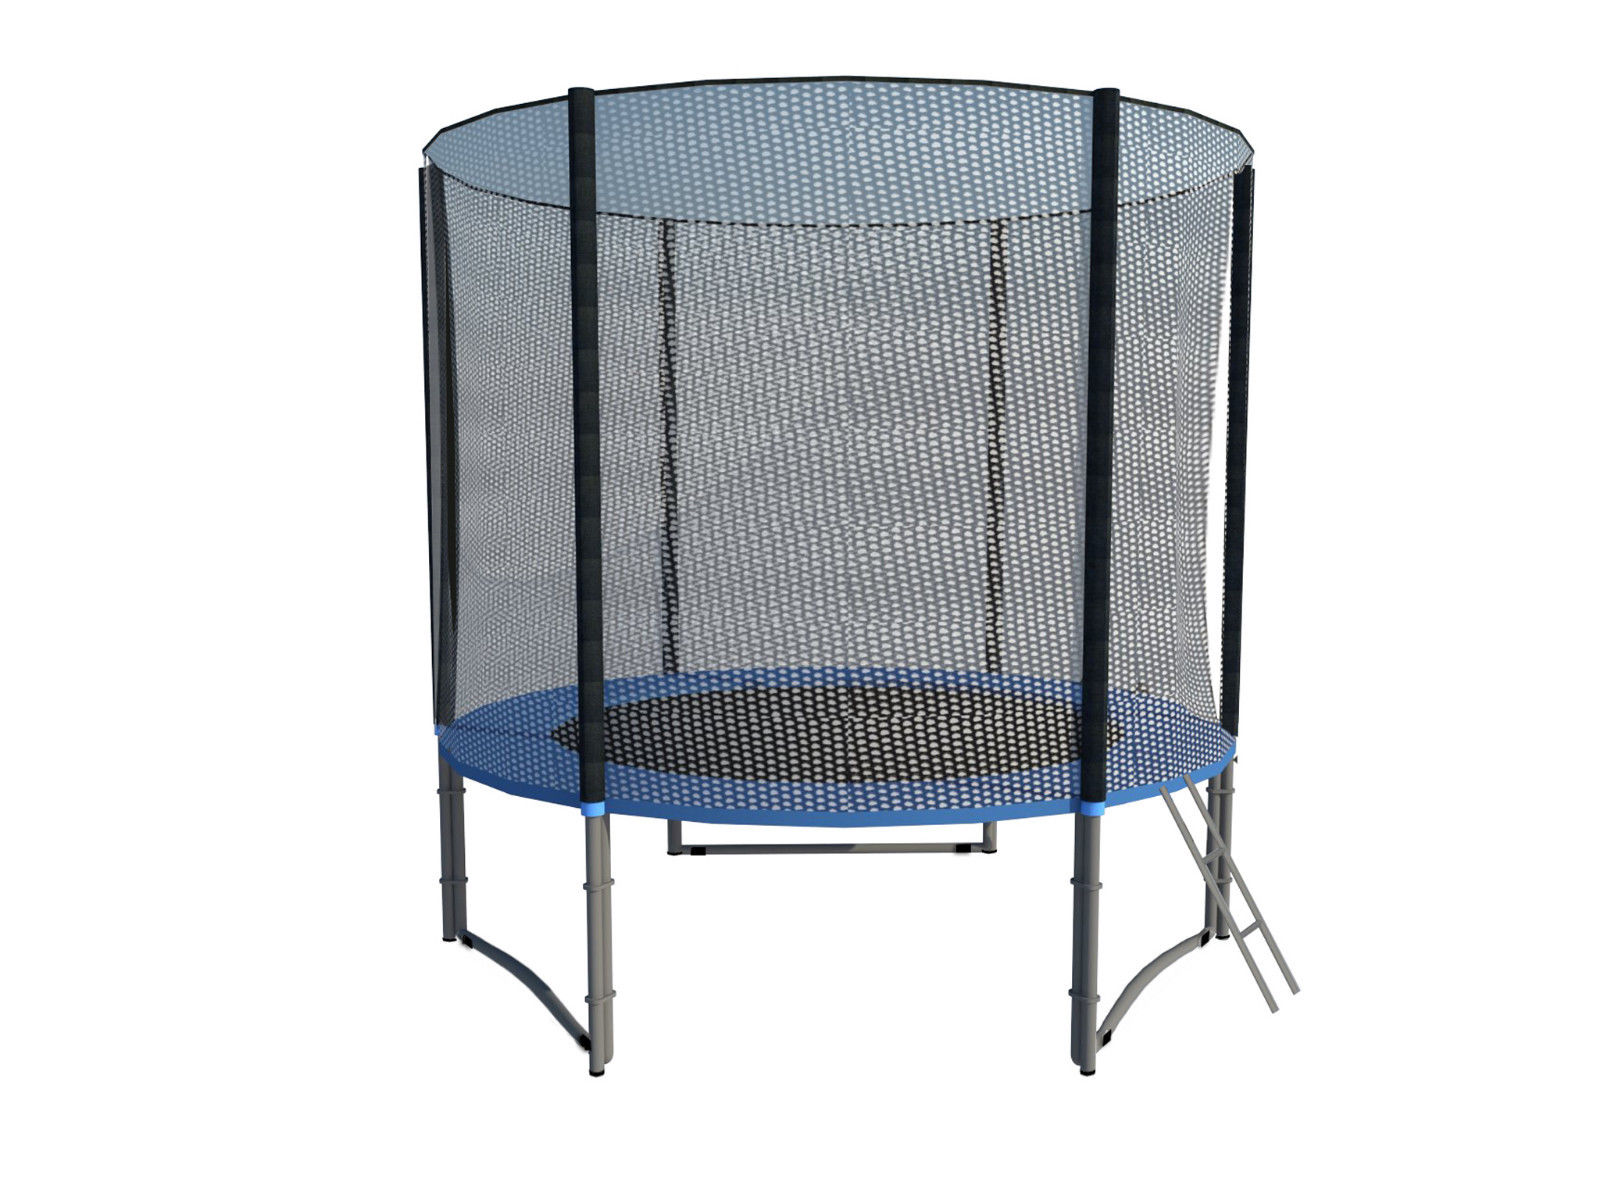 ExacMe-8-039-16-039-Round-Trampoline-Safety-Pad-With-Net-Ladder-Basketball-Hoop